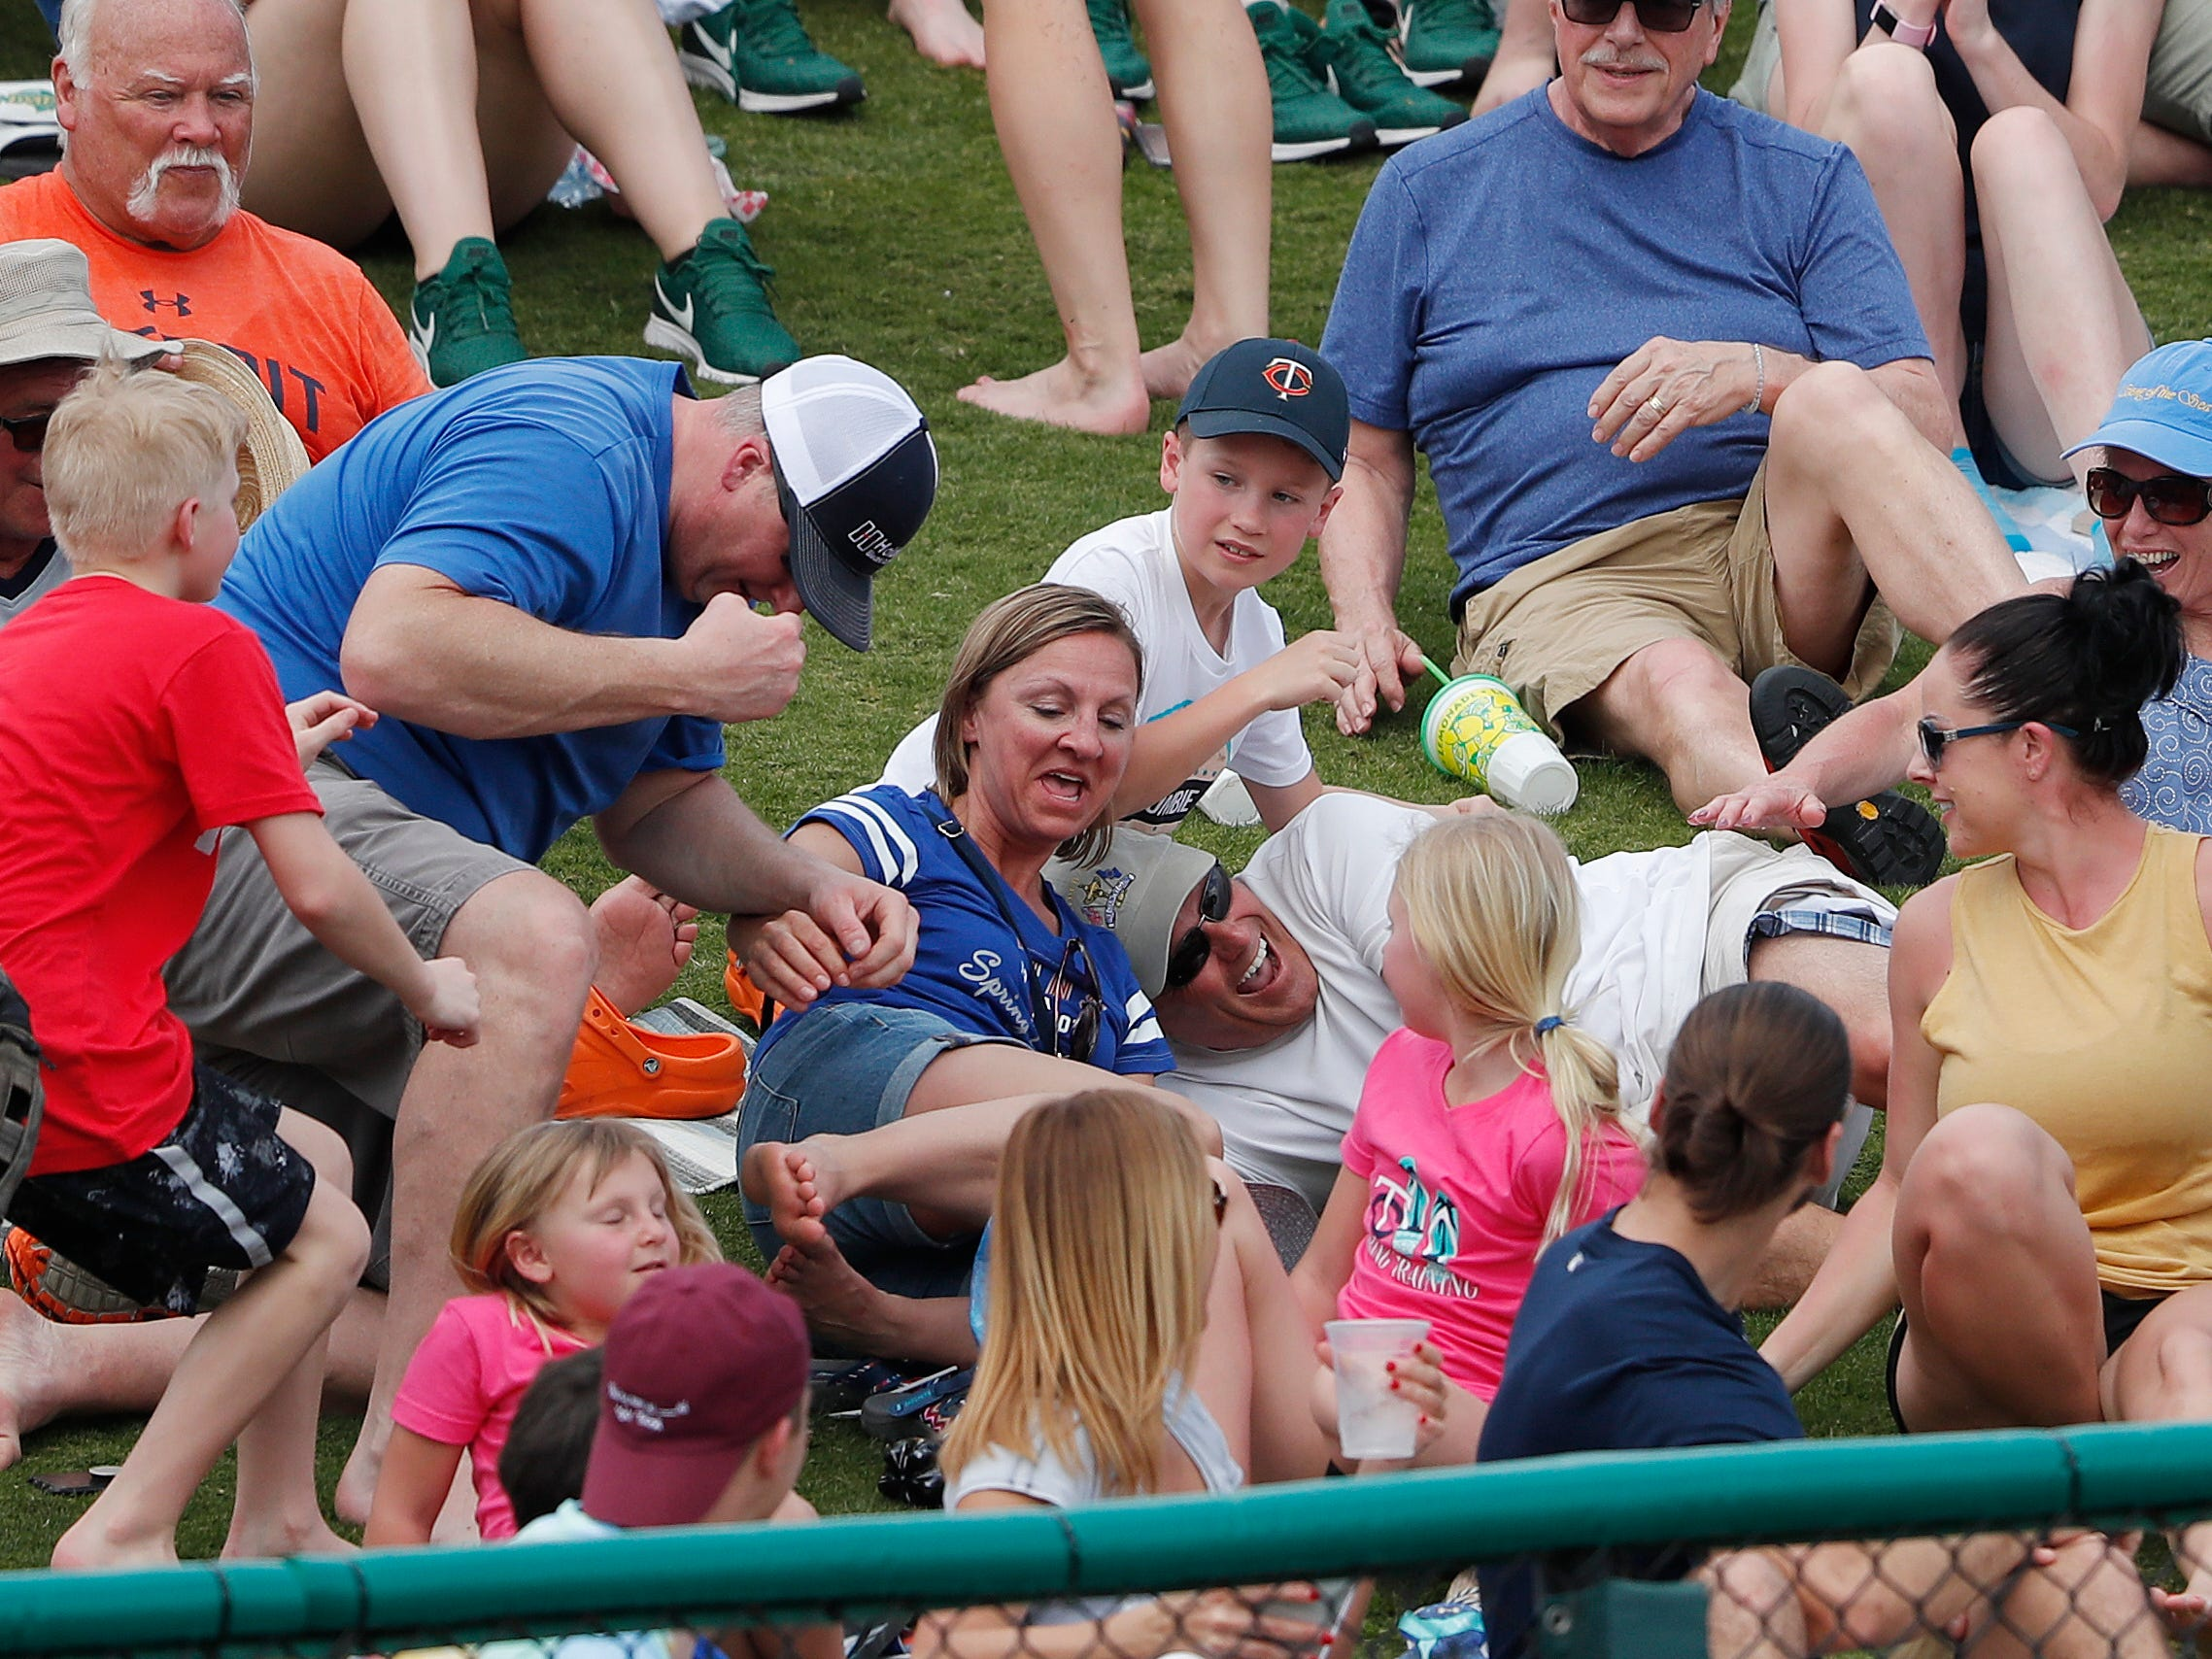 Fans sitting behind the left field fence during a spring training baseball game between Detroit Tigers and Minnesota Twins scramble for a home-run ball off the bat of Detroit Tigers left fielder JaCoby Jones Monday, March 11, 2019, in Fort Myers, Fla.